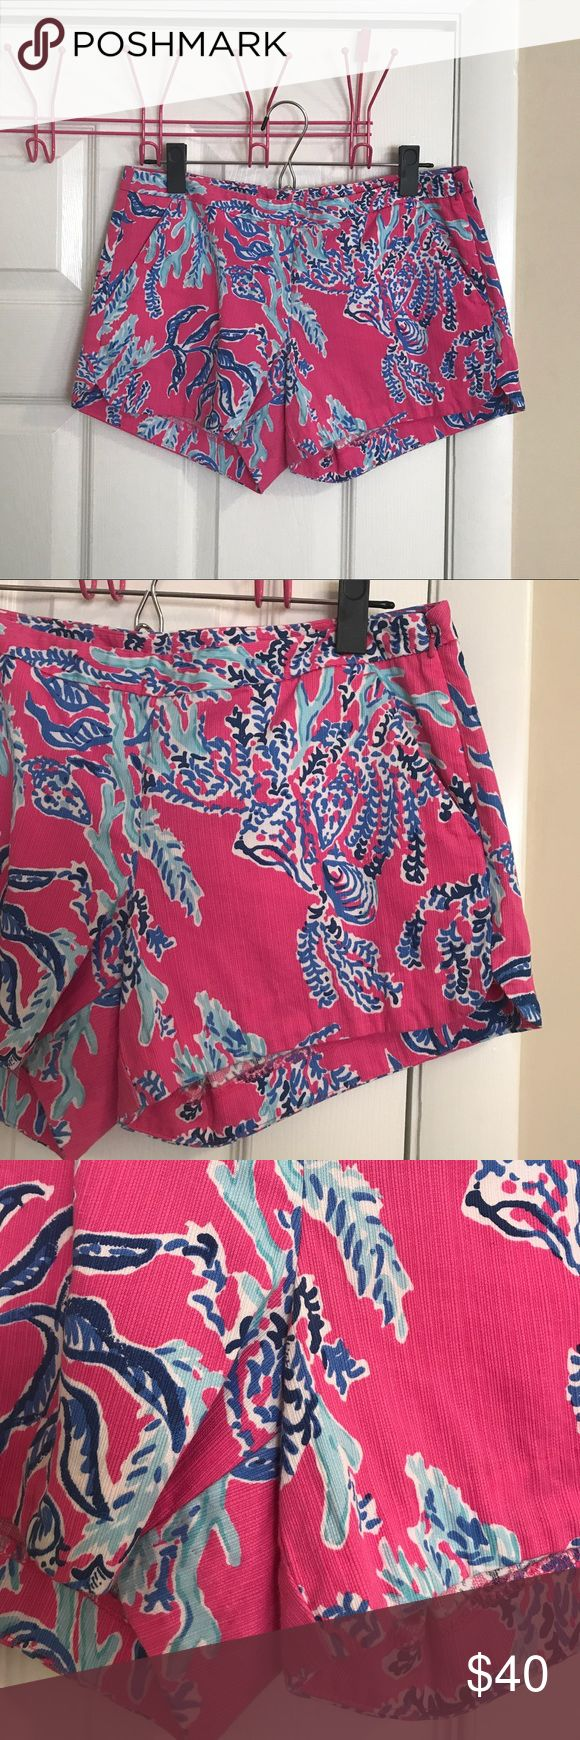 "Lilly Pulitzer Pink Samba Adie Short Lilly Pulitzer Adie Short in Pink Samba. Size 2. Good used condition. Have been worn and washed a few times. Never dried in the dryer. 4"" inseam. No flaws, stains, pulls, etc. They run big IMO. NO TRADES. PRICE IS FIRM. Lilly Pulitzer Shorts"